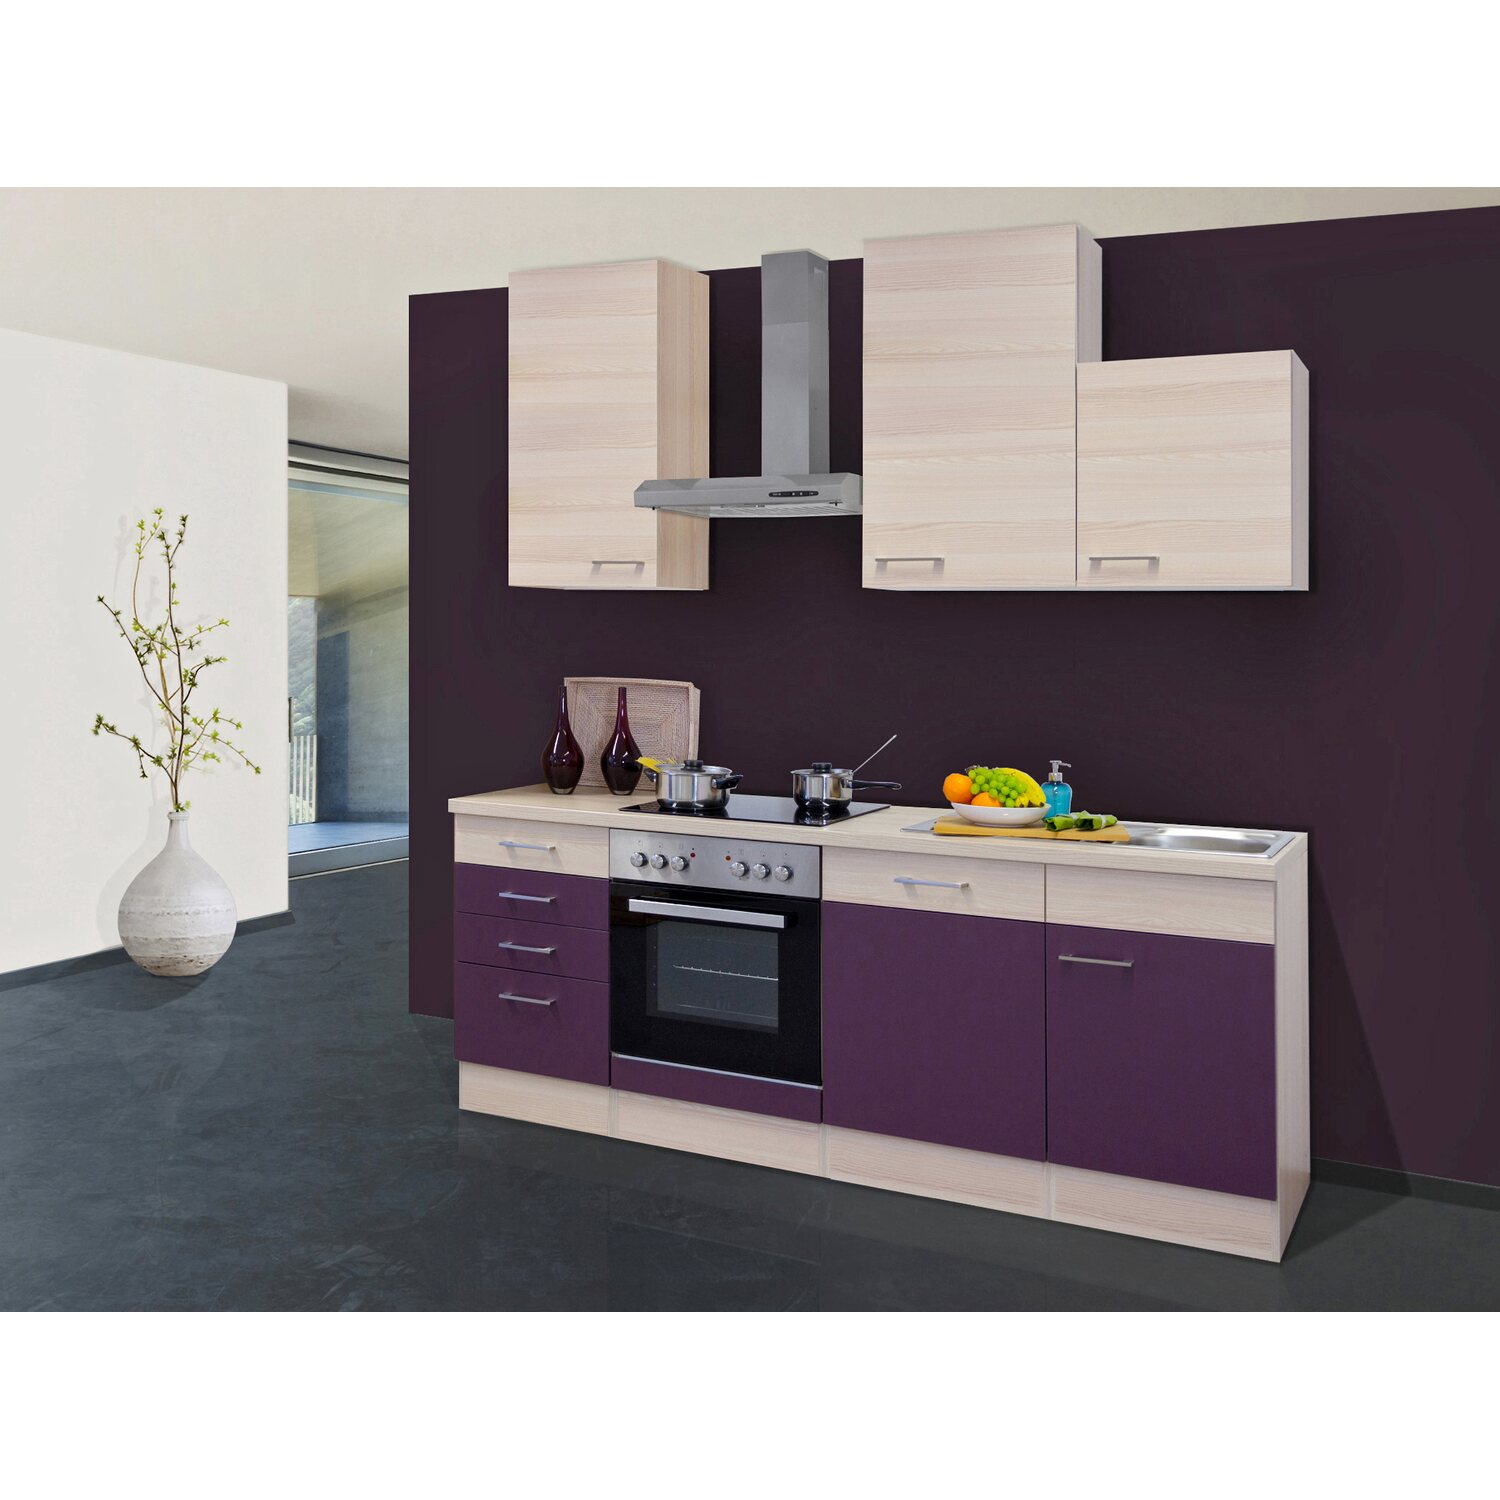 flex well exclusiv k chenzeile focus 220 cm akazie aubergine kaufen bei obi. Black Bedroom Furniture Sets. Home Design Ideas